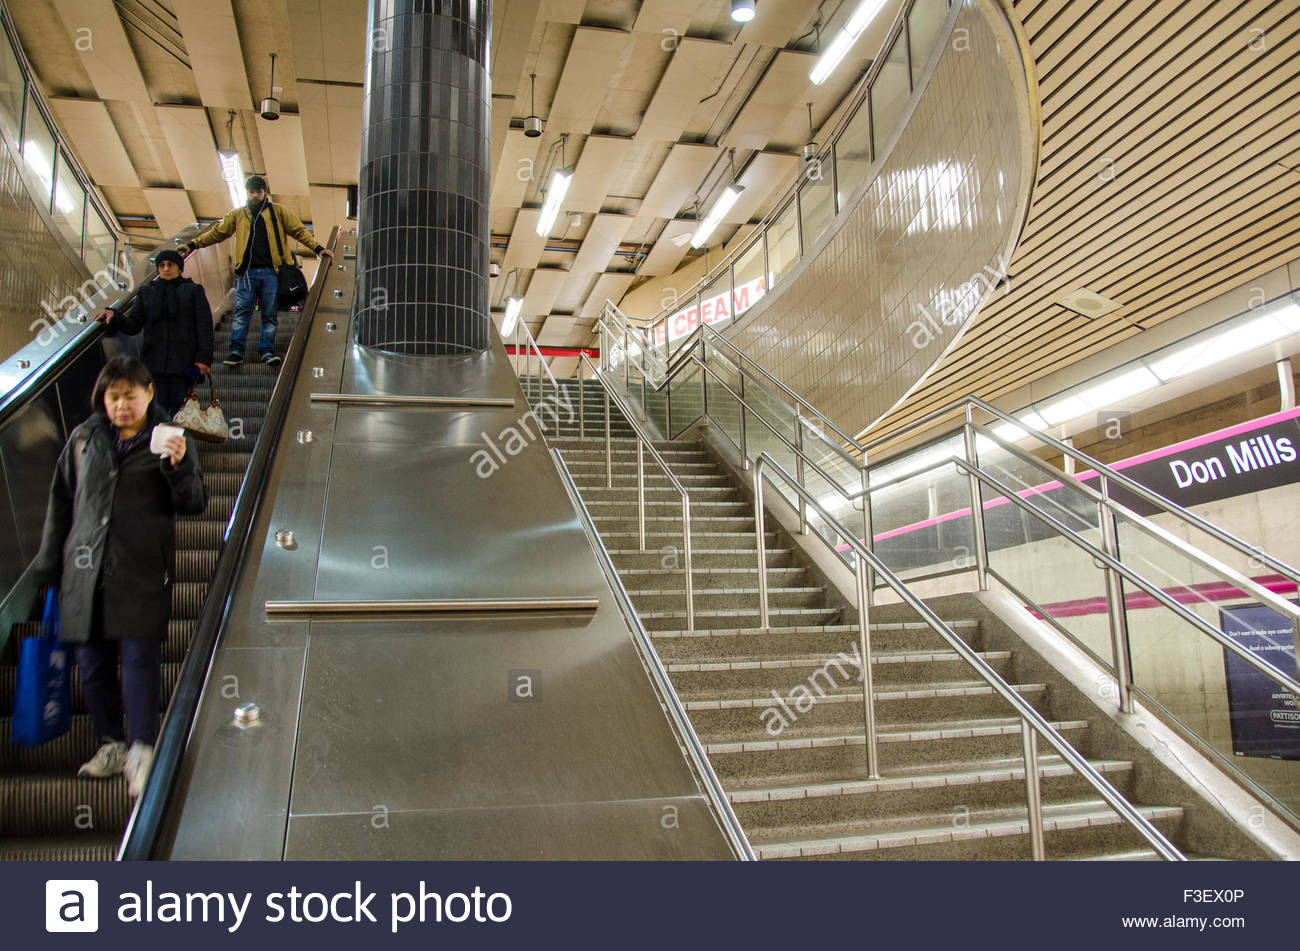 04ca672c People using the escalator in Don Mills Station. There are stairs running  parallel to the